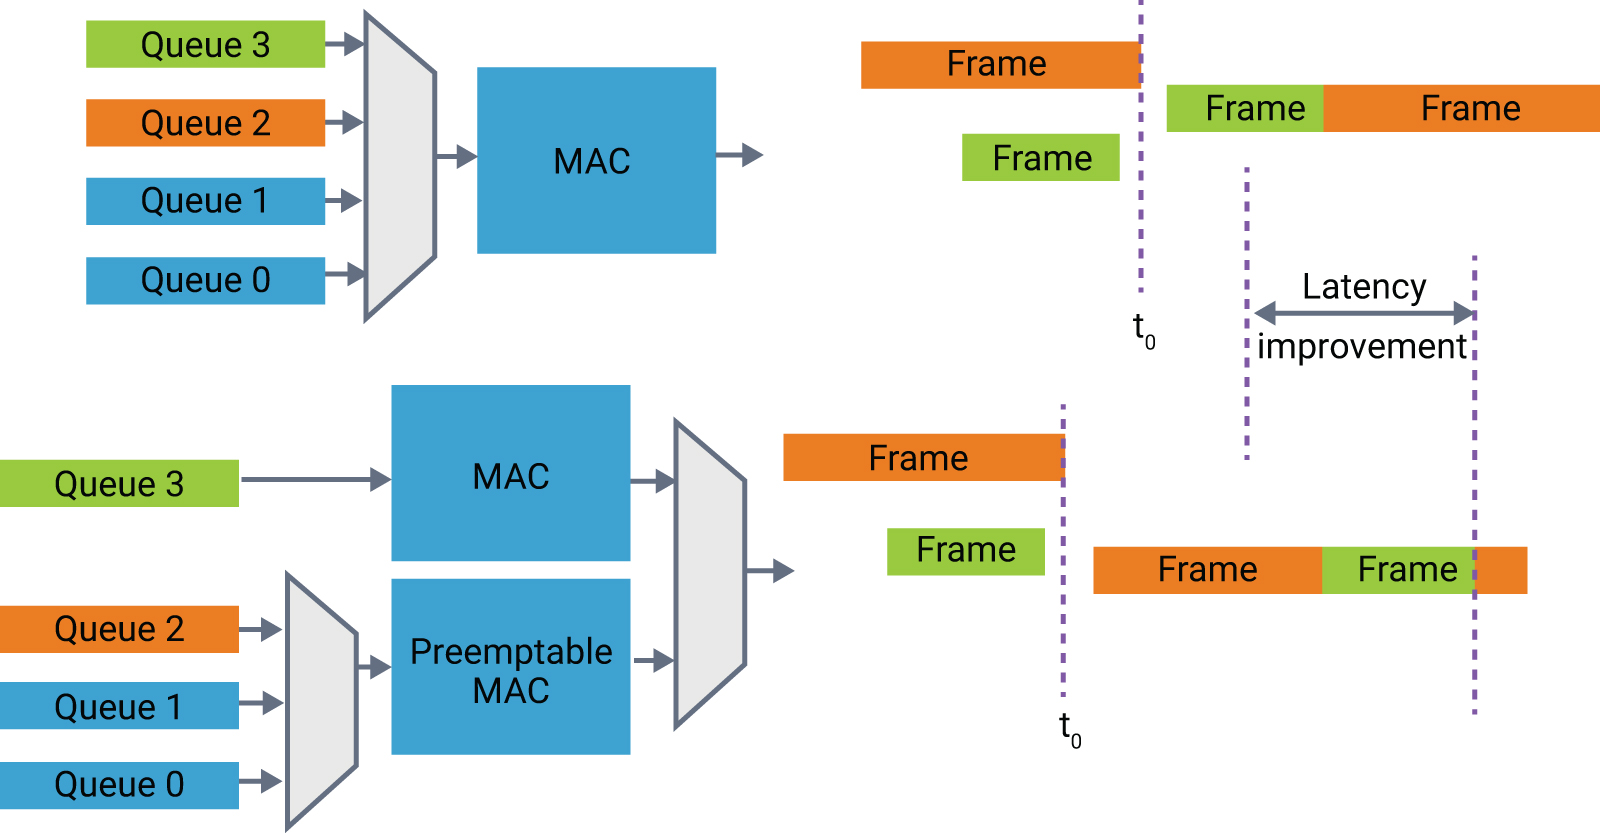 Figure 2: Preemption reduces latency of time-critical data streams